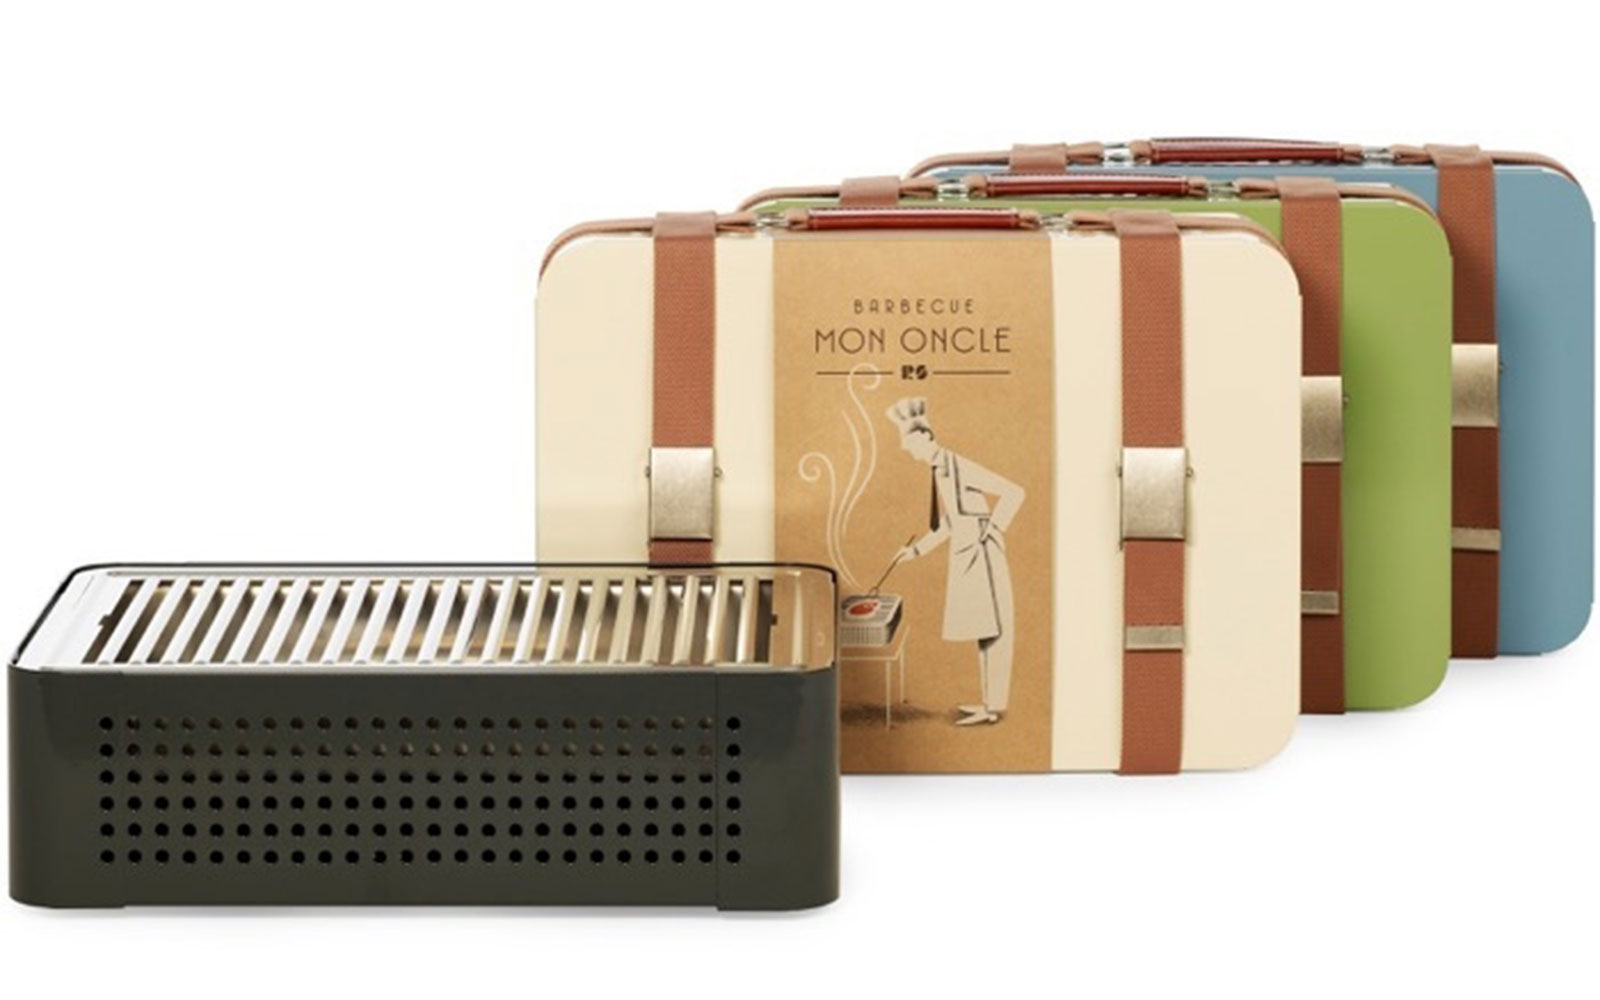 Camping Gear: Mon Oncle V2 Barbecue